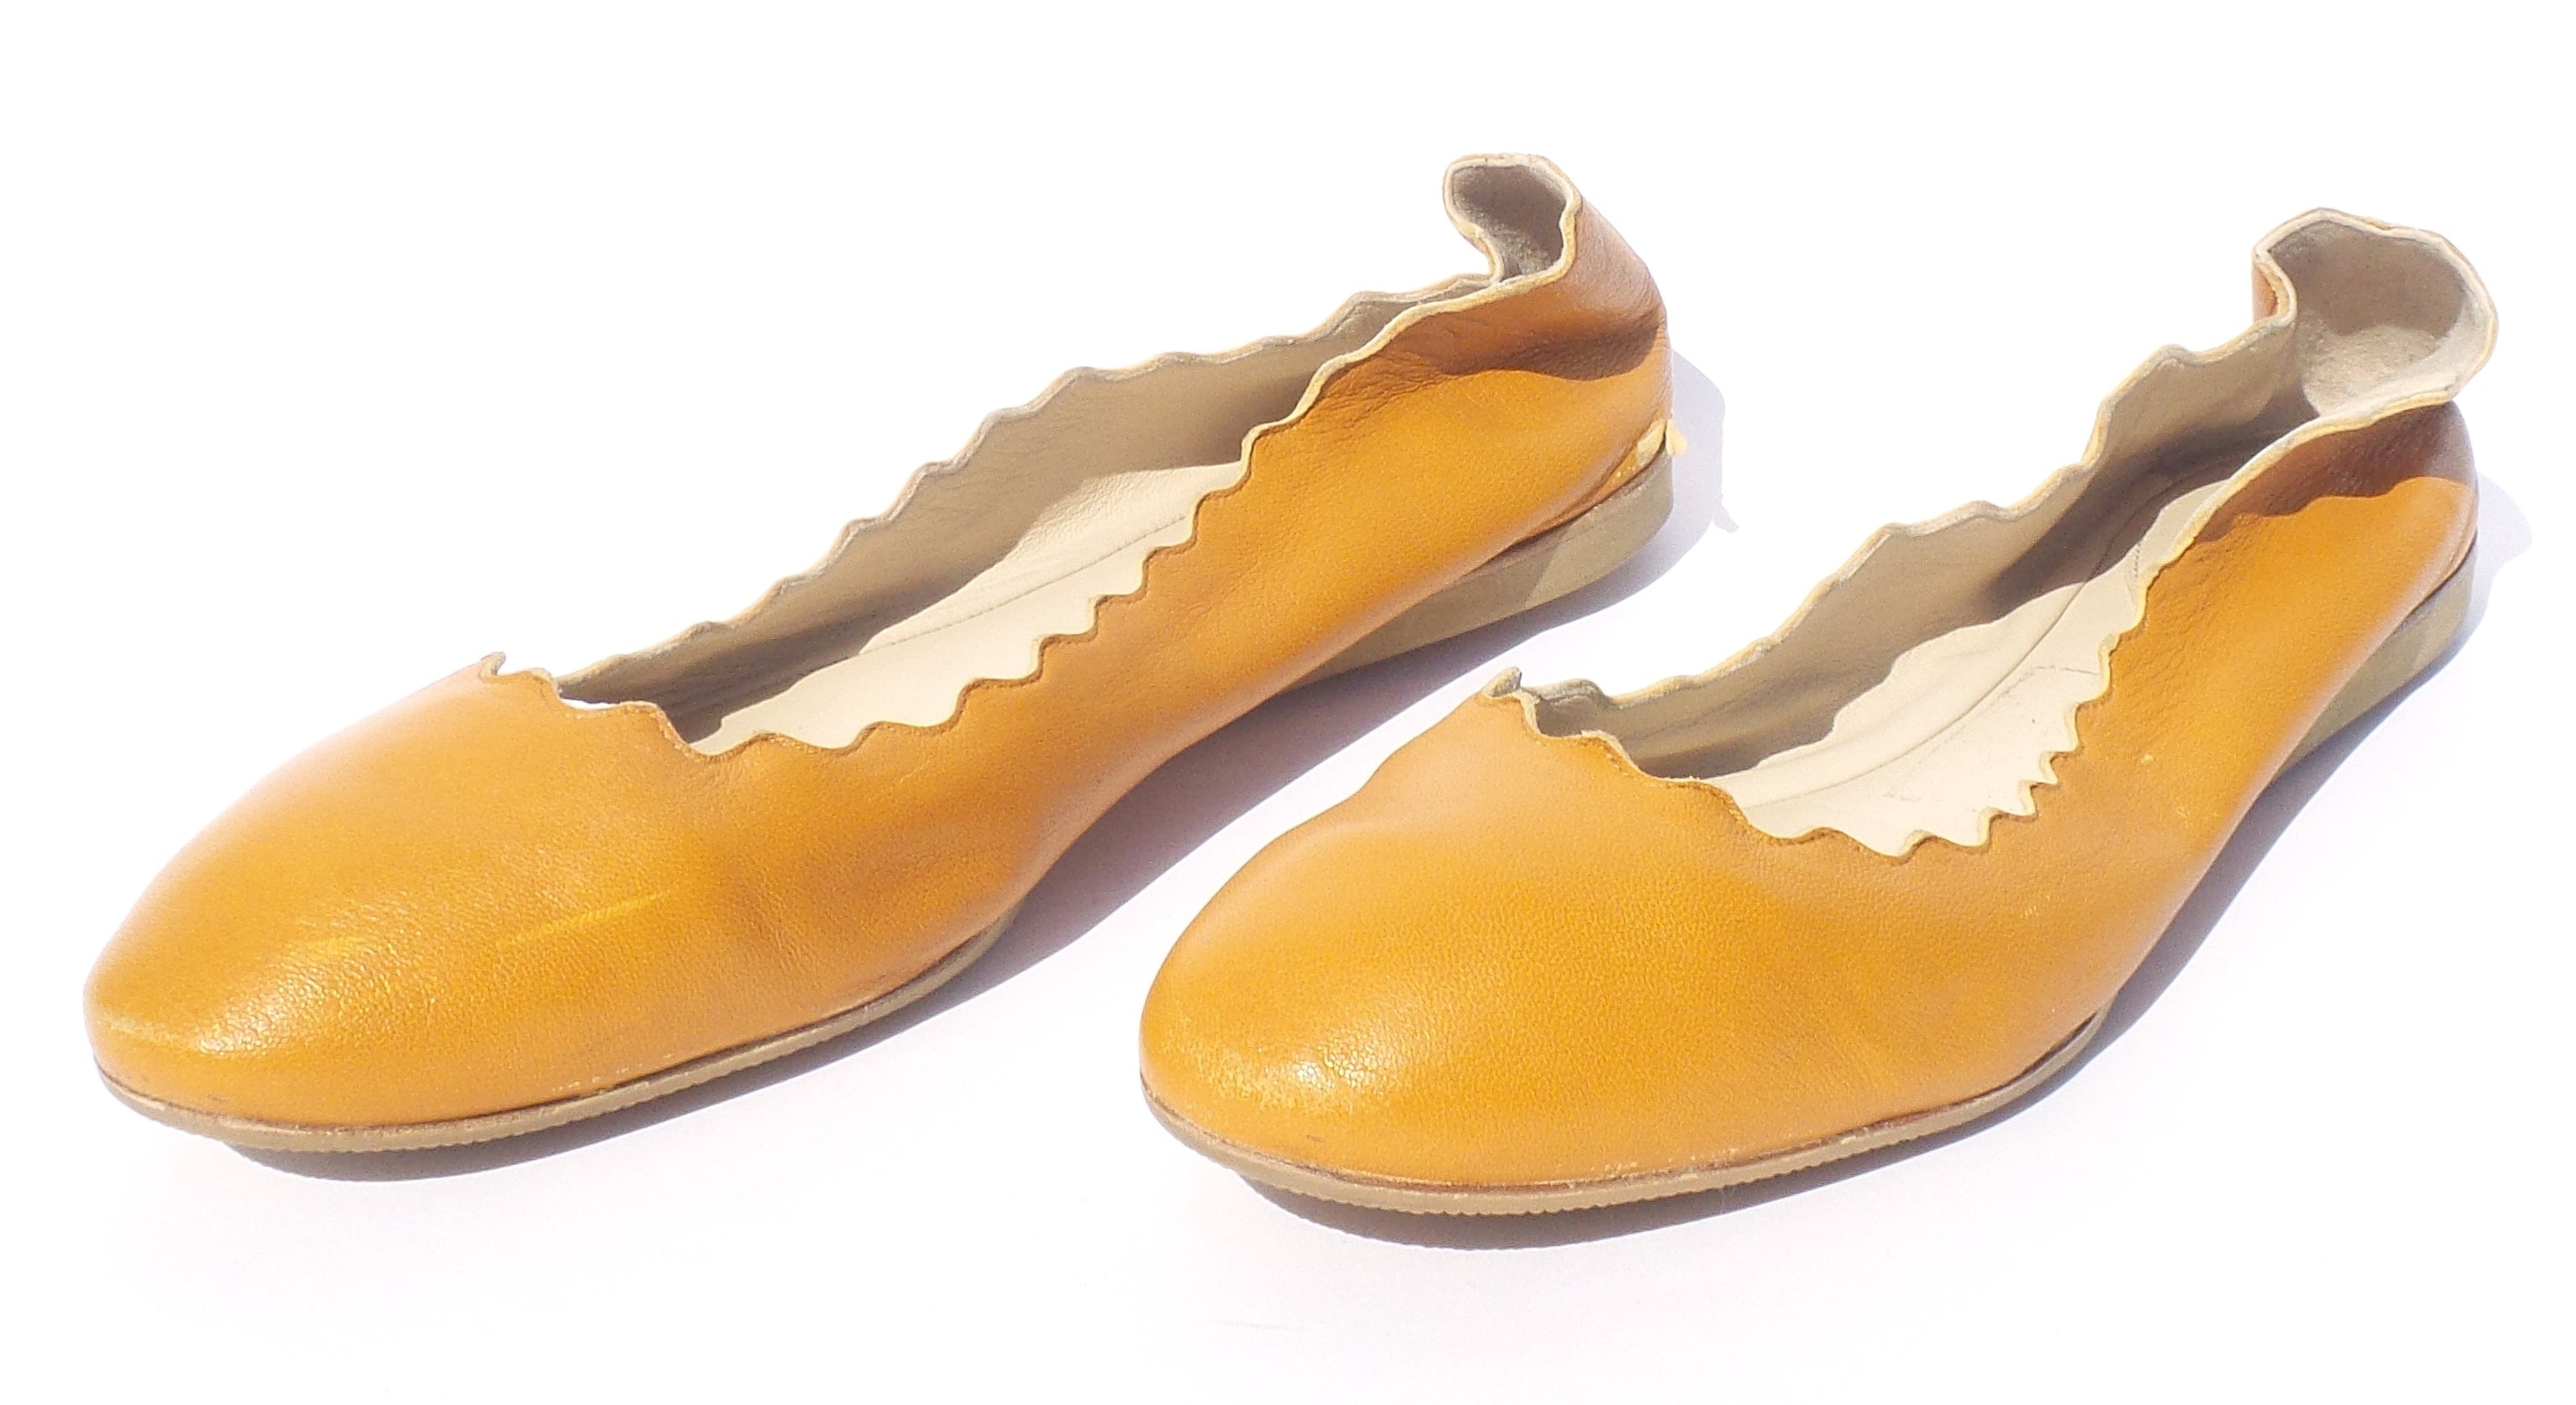 CHLOE Lauren Caramel Honey Camel Tan Leather Scalloped Ballet Flats 38.5 39 FC